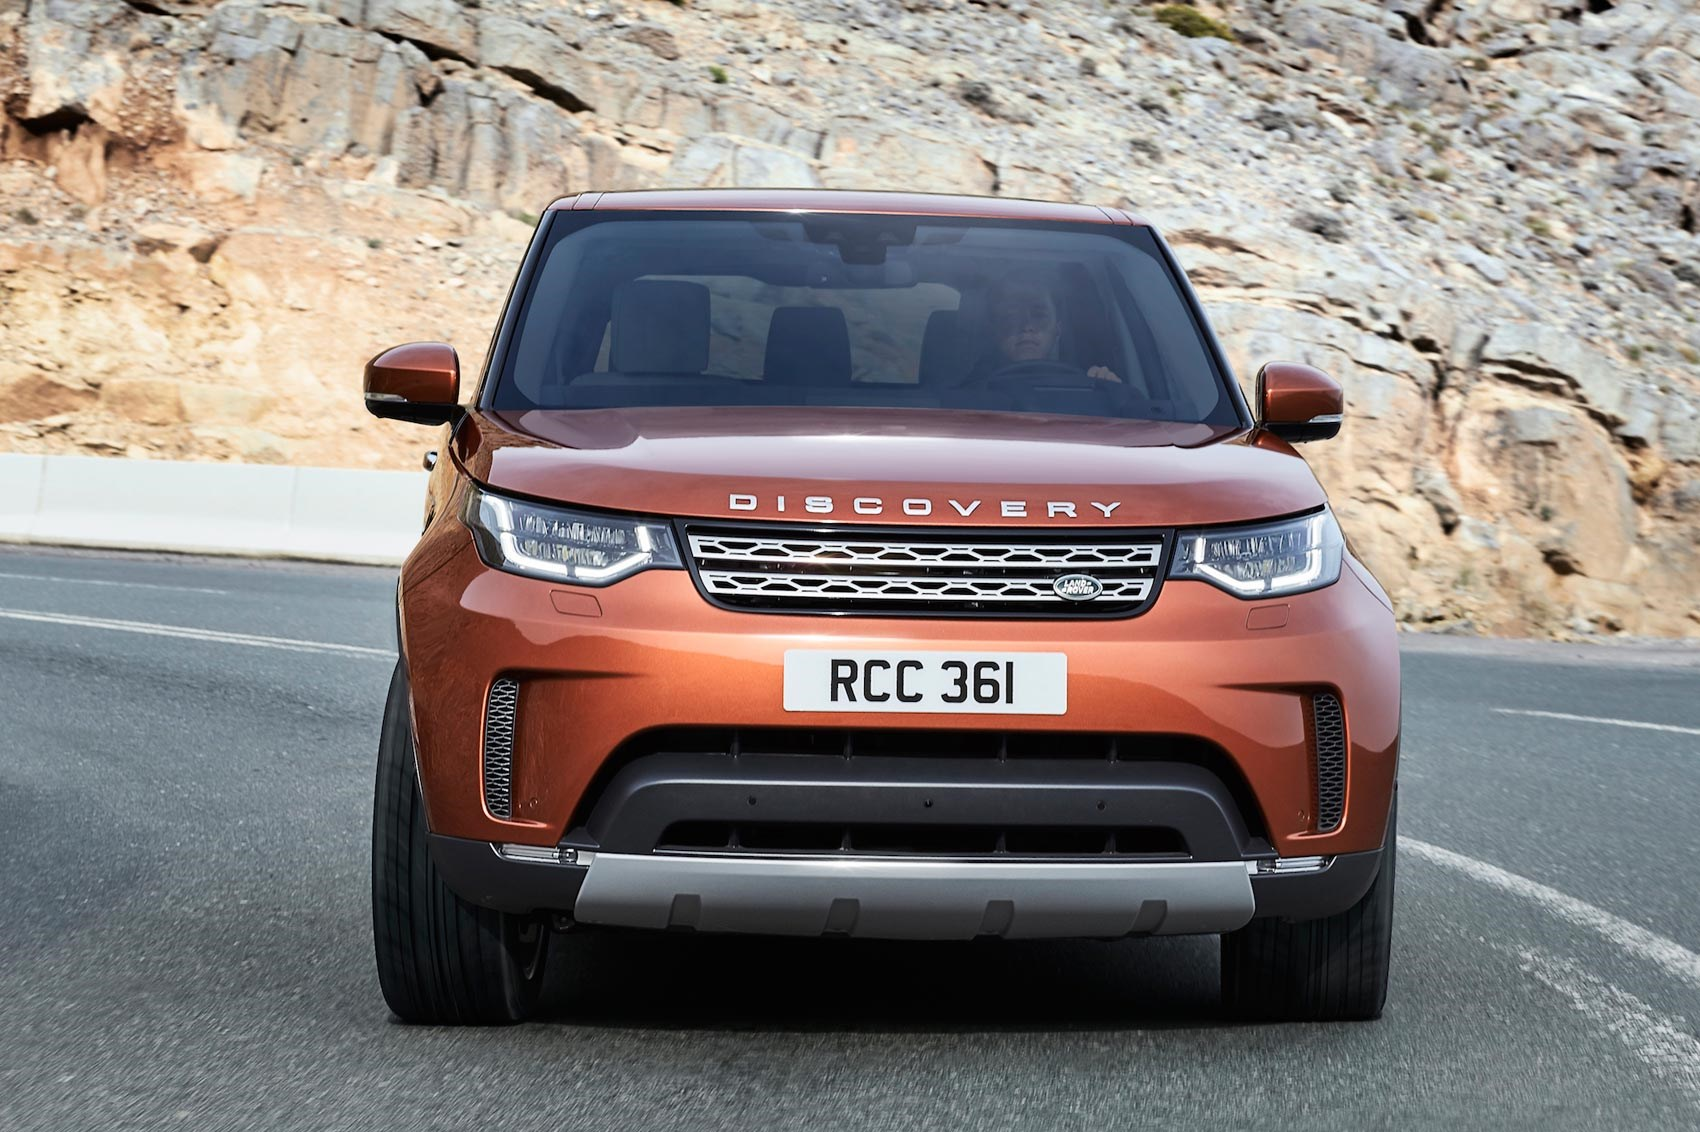 Discovery 5 is alive! Land Rover's new seven-seat practicality